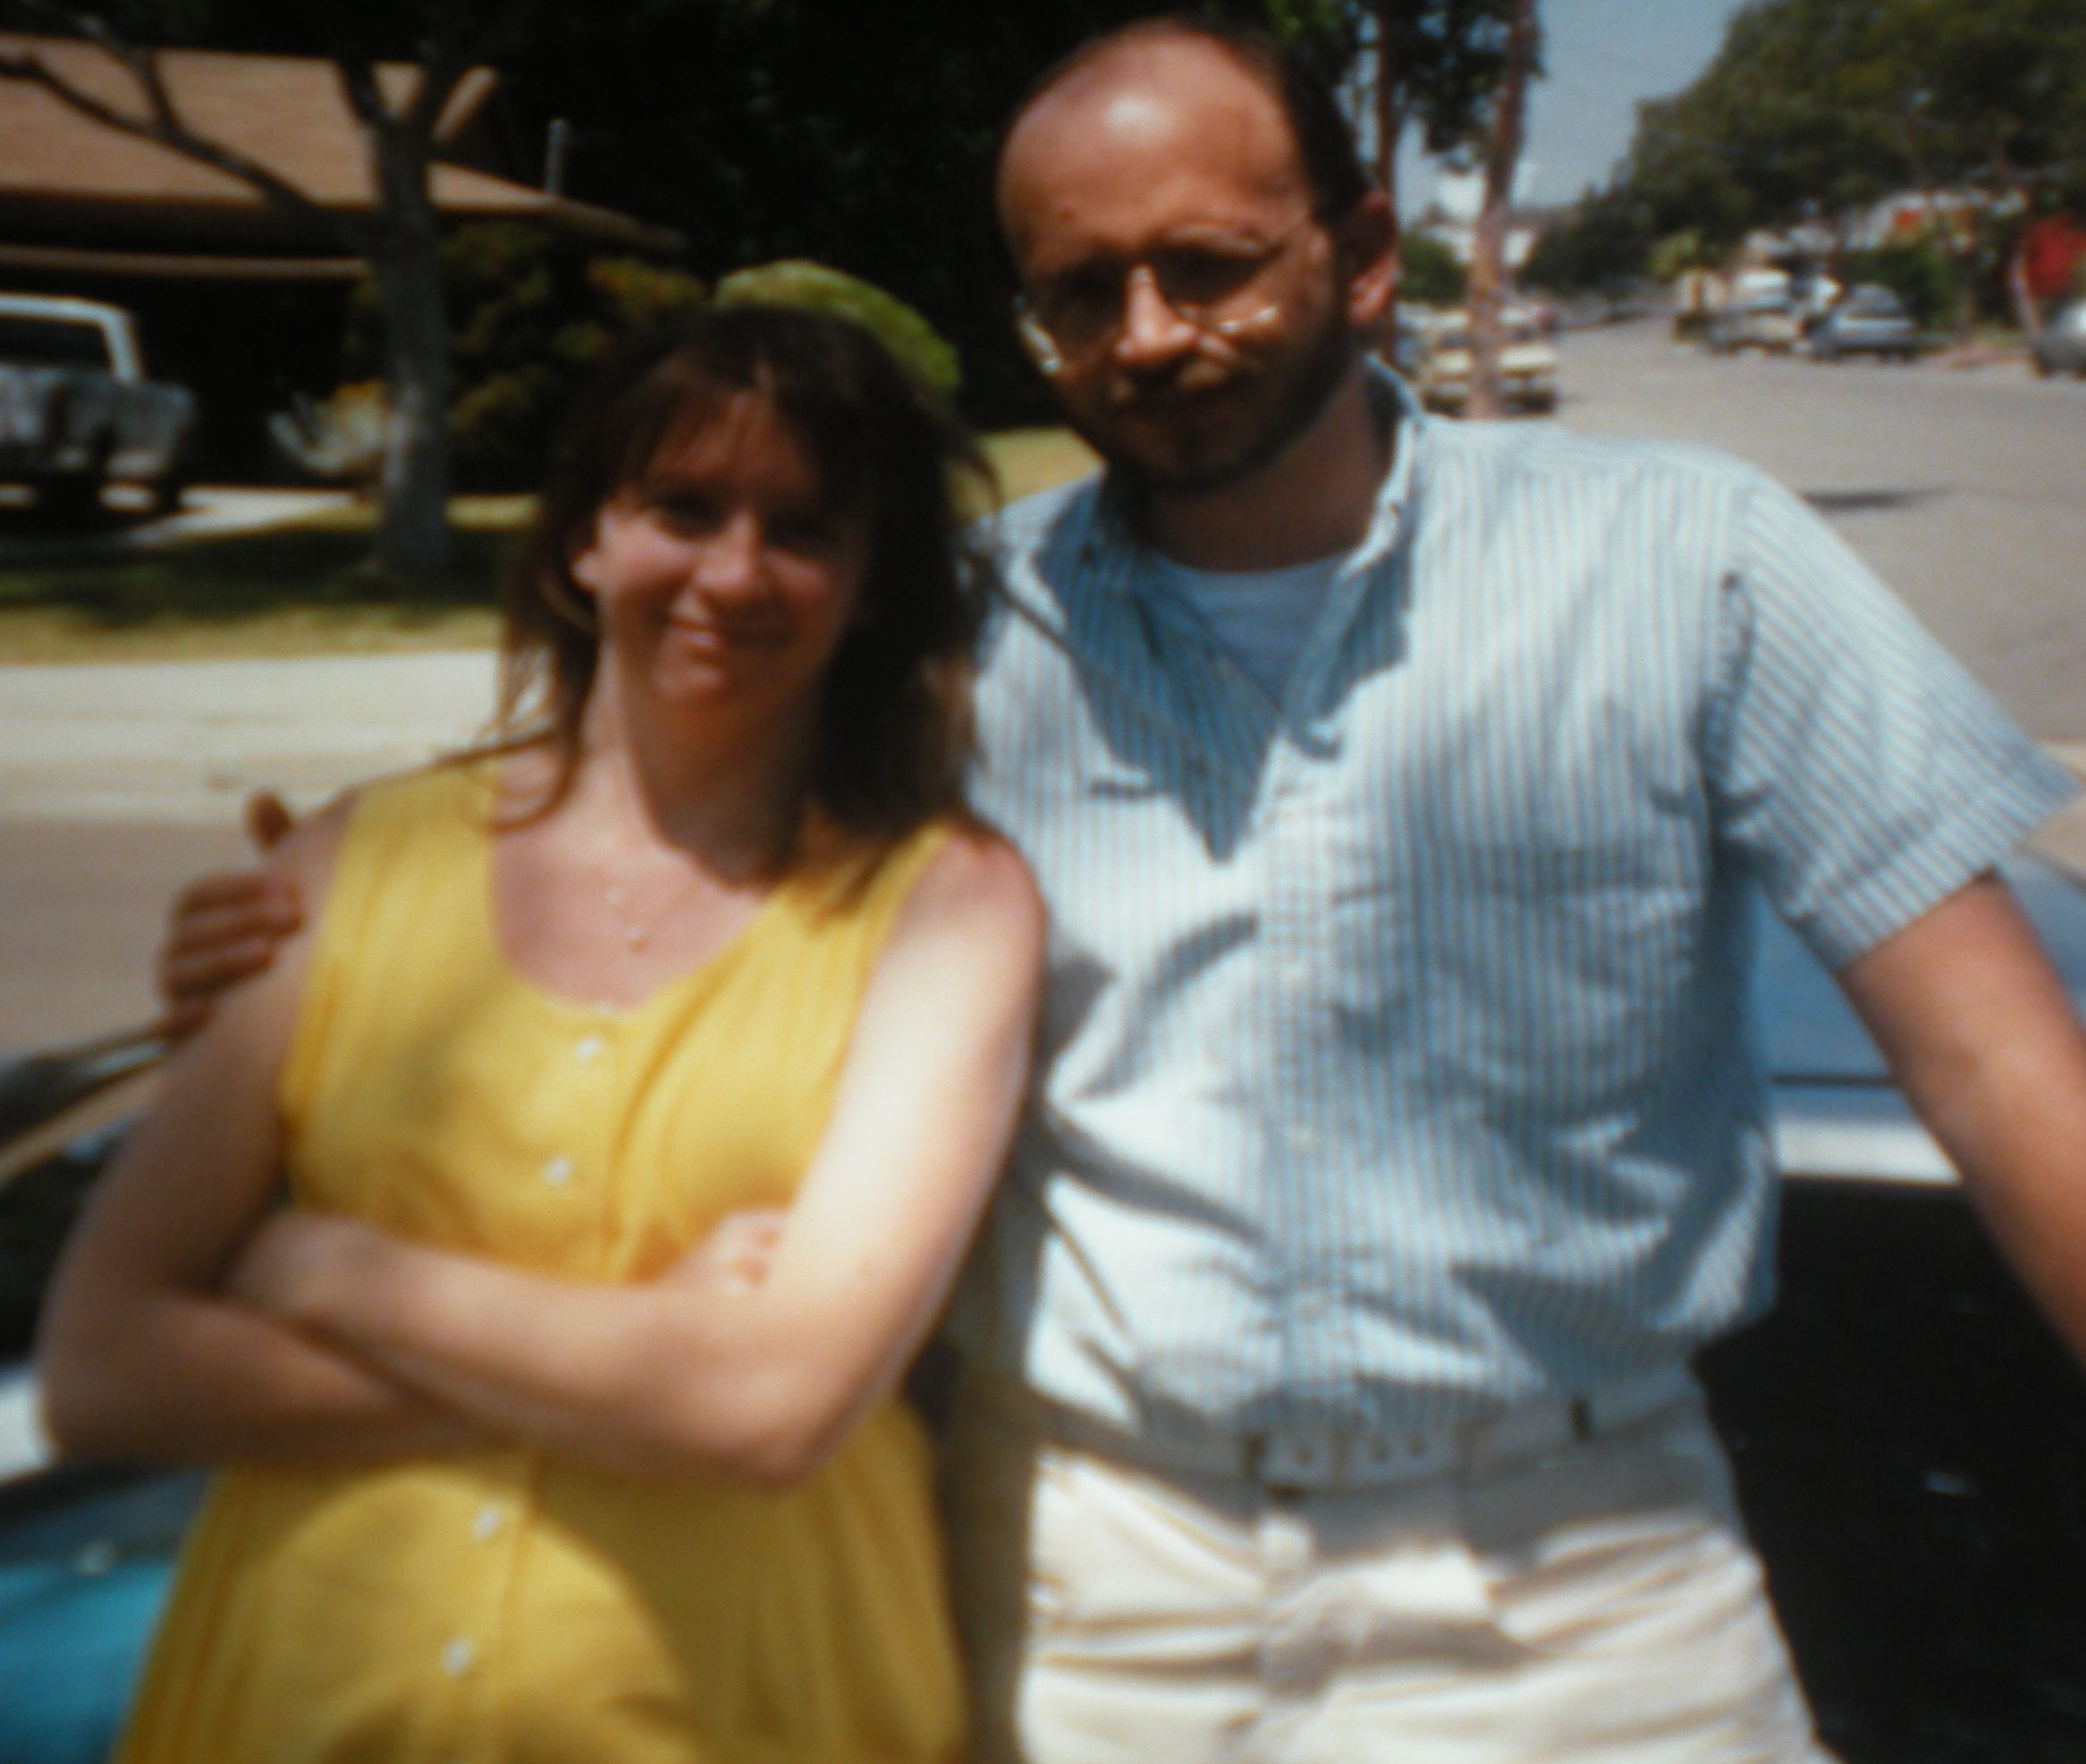 Scott and me at about 6 months pregnant - June? 1990